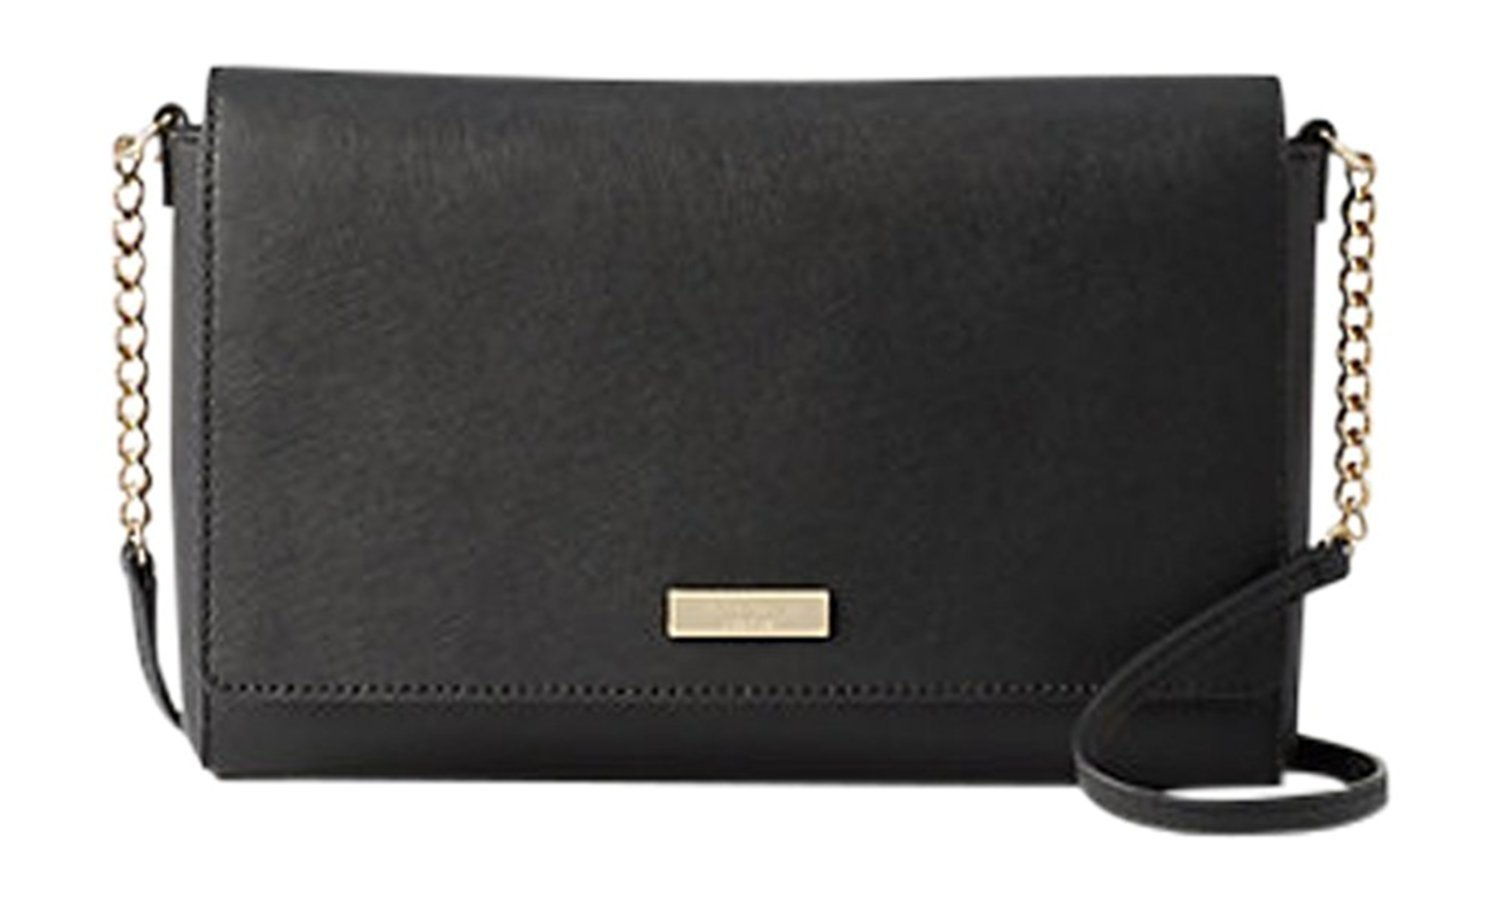 Kate Spade New York Tilden Place Alek Black Leather Crossbody handbag